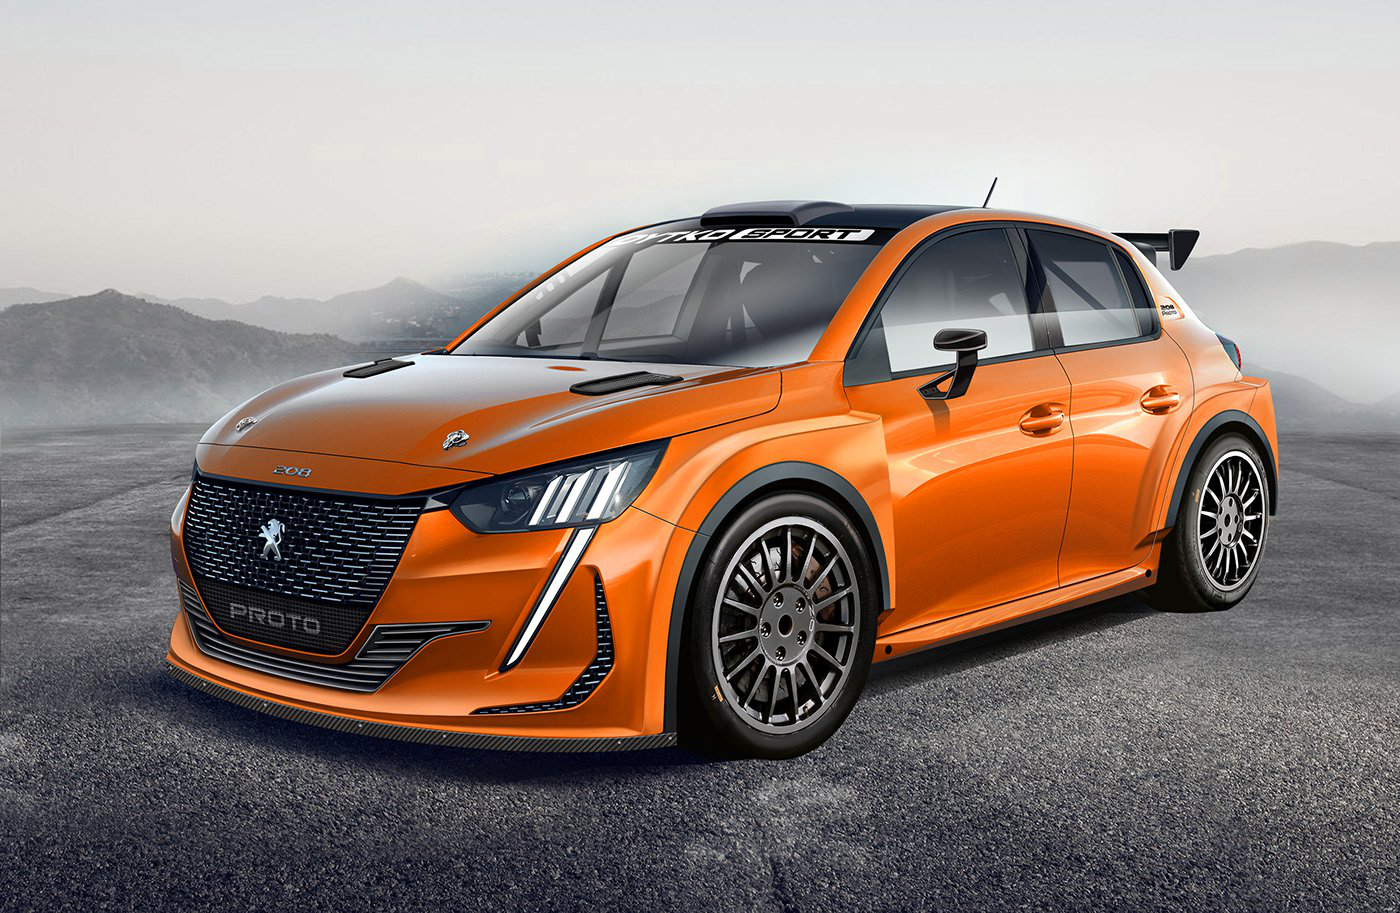 Peugeot 208 Rally Design Is What The Next GTI In WRCSpec